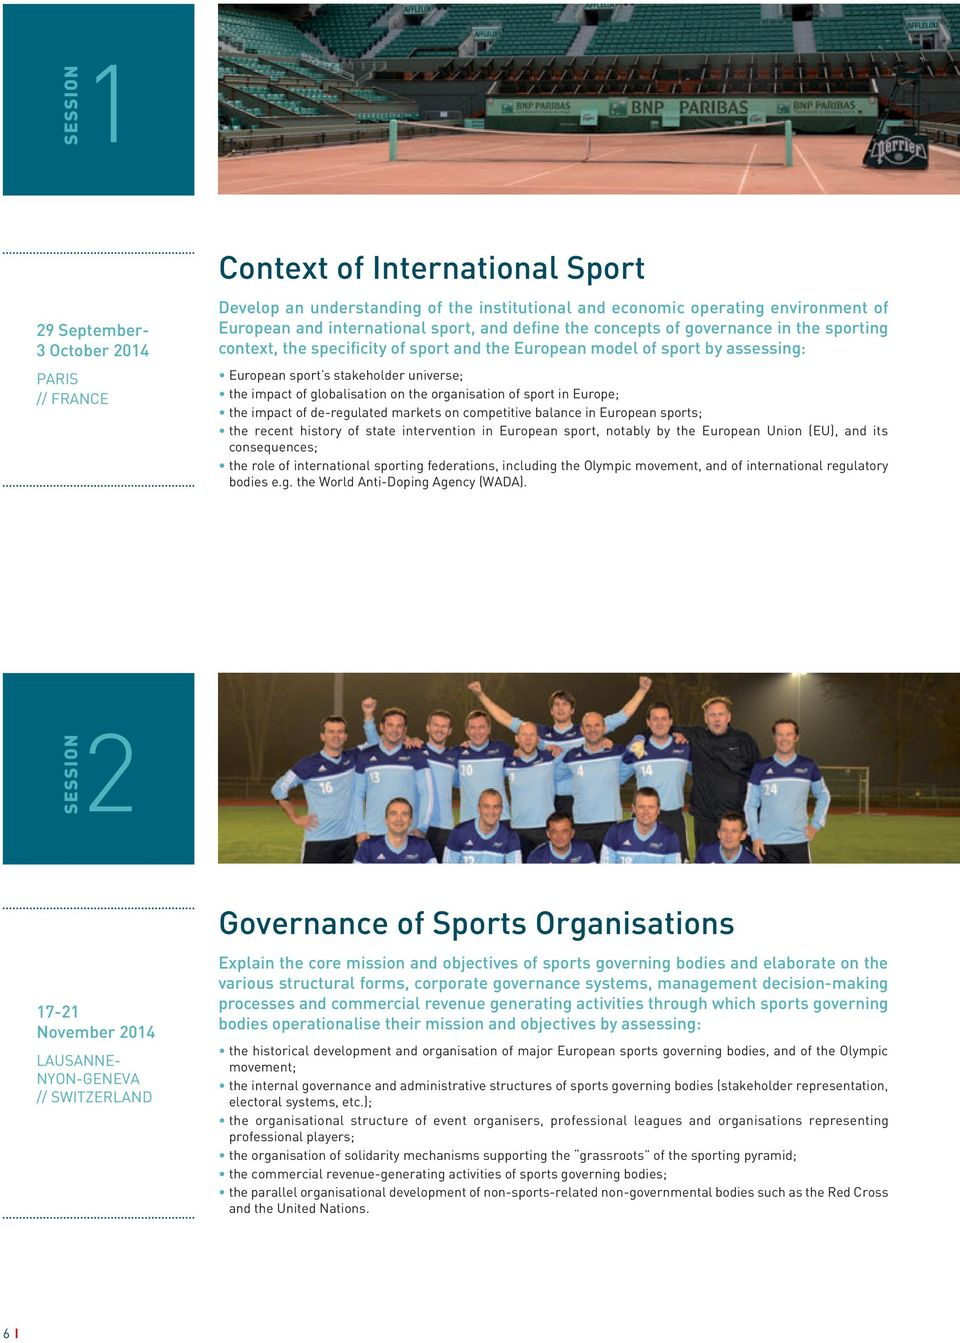 globalisation on the organisation of sport in Europe; the impact of de-regulated markets on competitive balance in European sports; the recent history of state intervention in European sport, notably